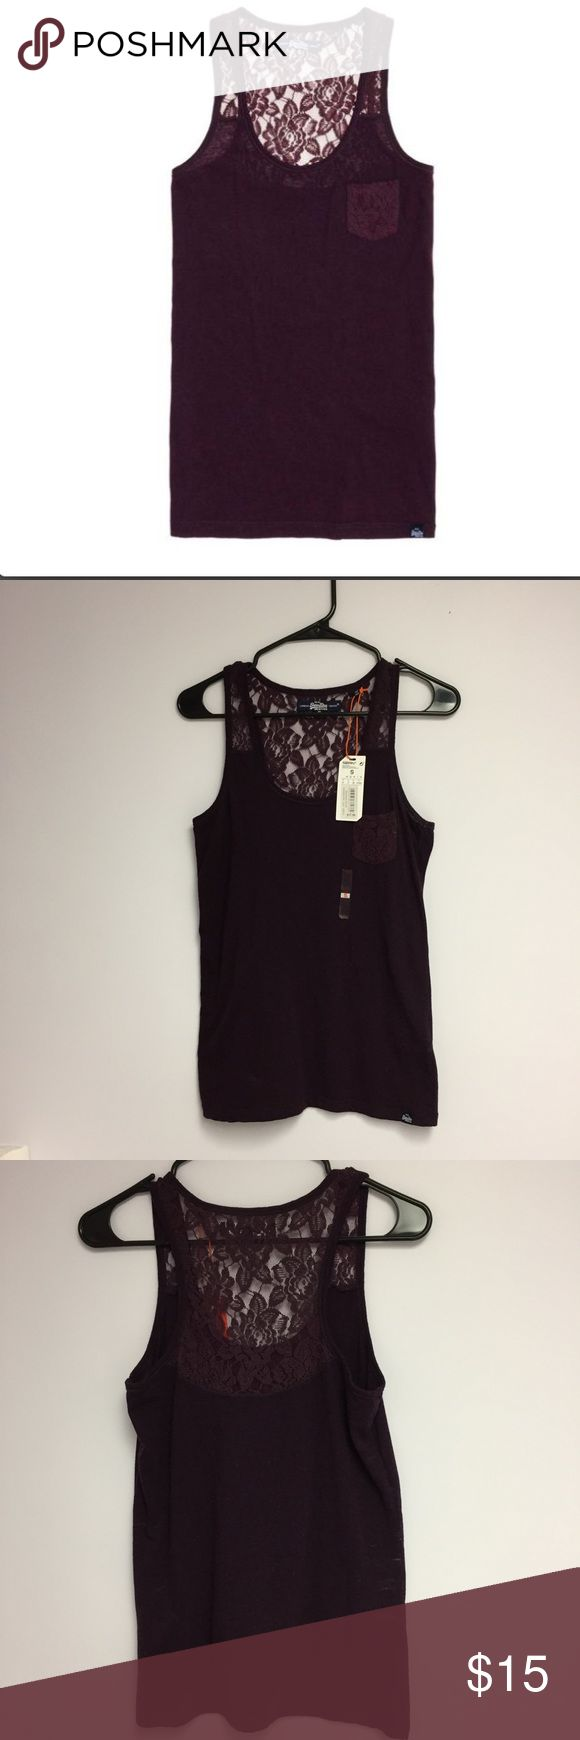 Superdry Tank Top •Pull over styling  •lace pocket, lace on back top portion  •sleeveless  •Body: 52% Polyester 37% Cotton 11% Viscose •Machine Washable cold  •Color: Blackened Purple    🌻NO TRADES 🌻OFFERS WELCOMED! 🌻BUNDLE TO SAVE  🌻FEEL FREE TO ASK ANY QUESTIONS Superdry Tops Tank Tops